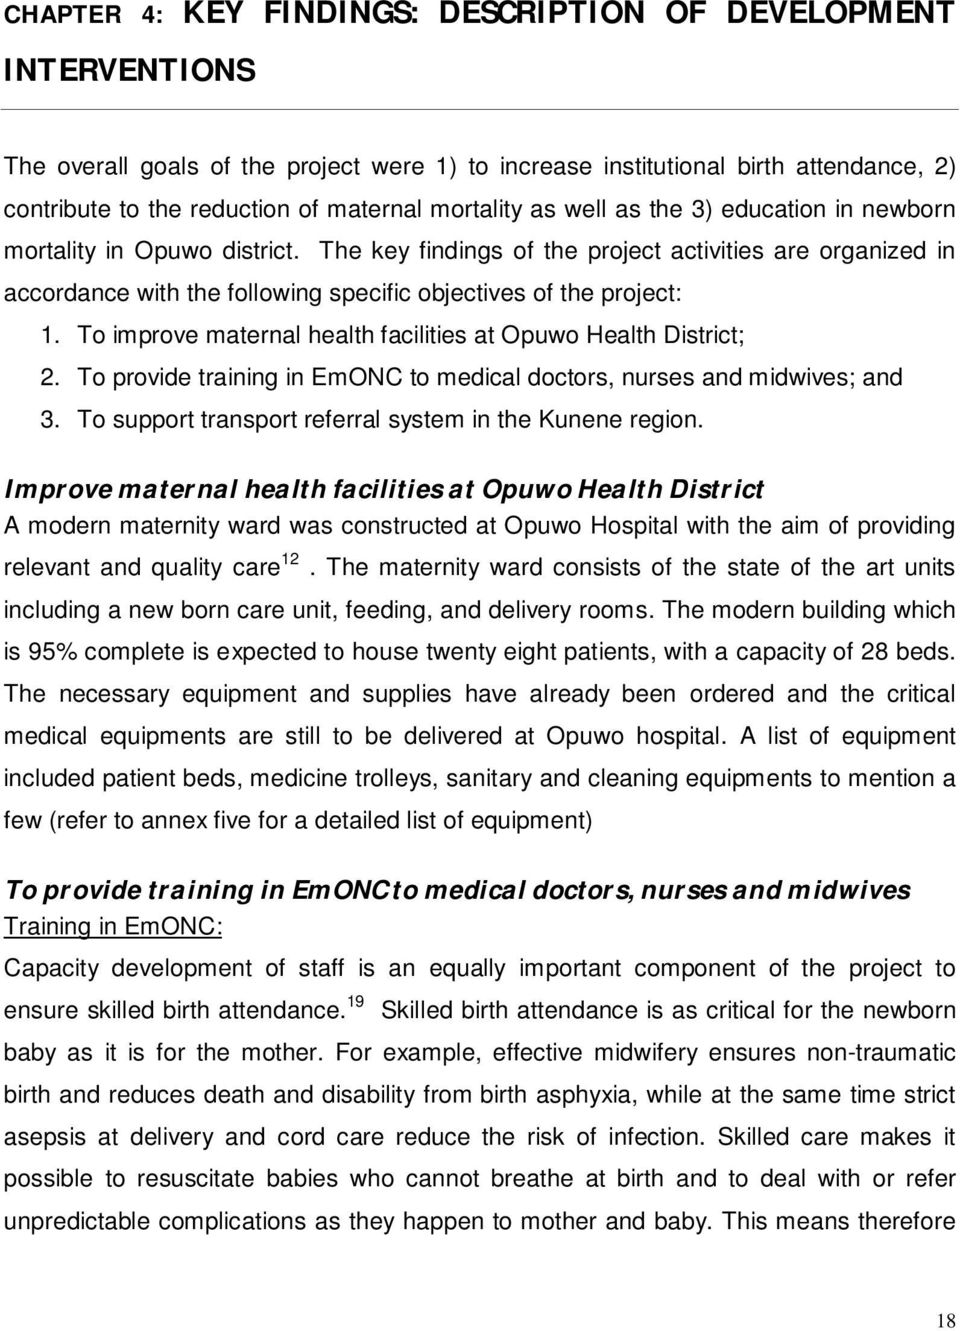 The key findings of the project activities are organized in accordance with the following specific objectives of the project: 1. To improve maternal health facilities at Opuwo Health District; 2.